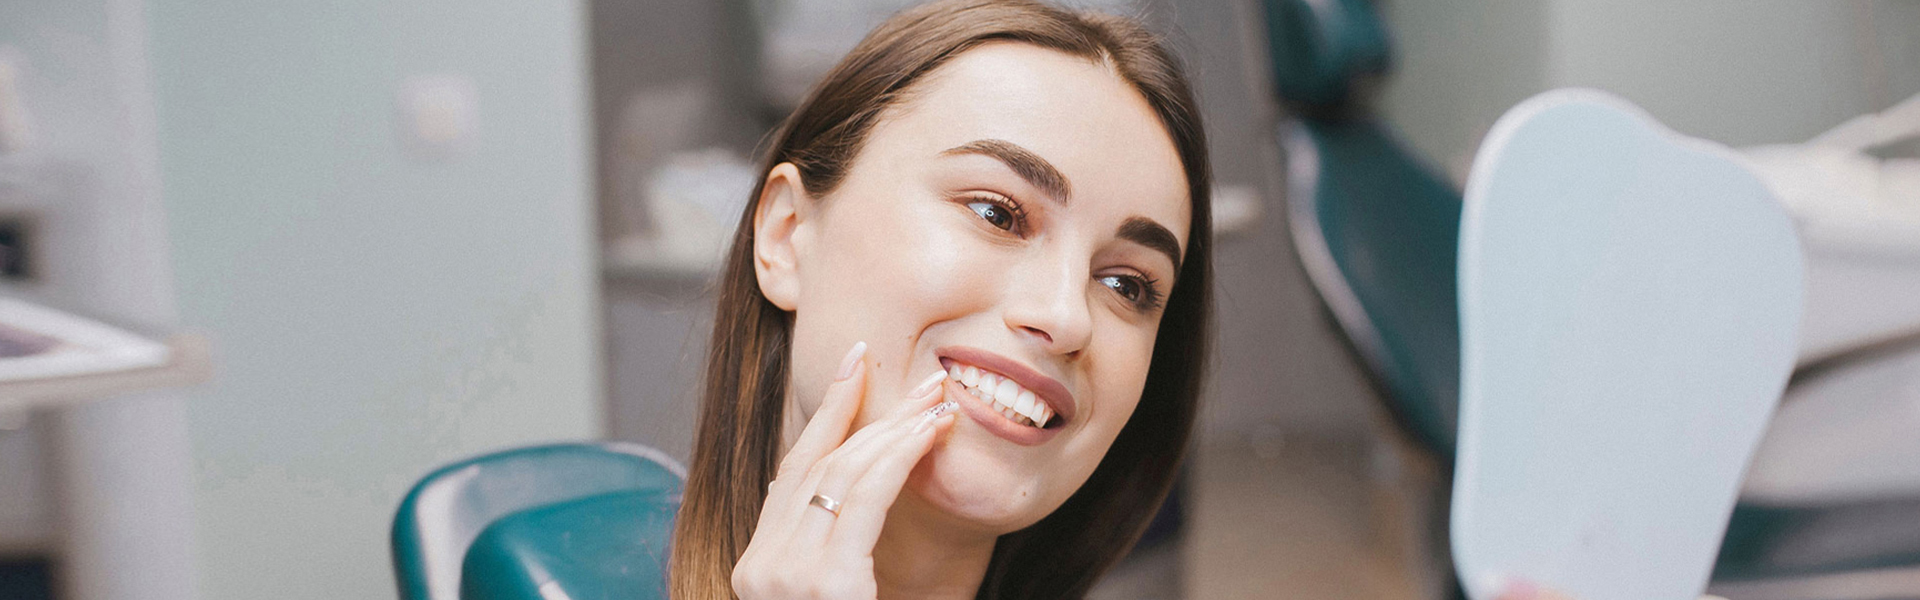 Tips And Suggestions From Your Trusted Dentists In Calgary, AB